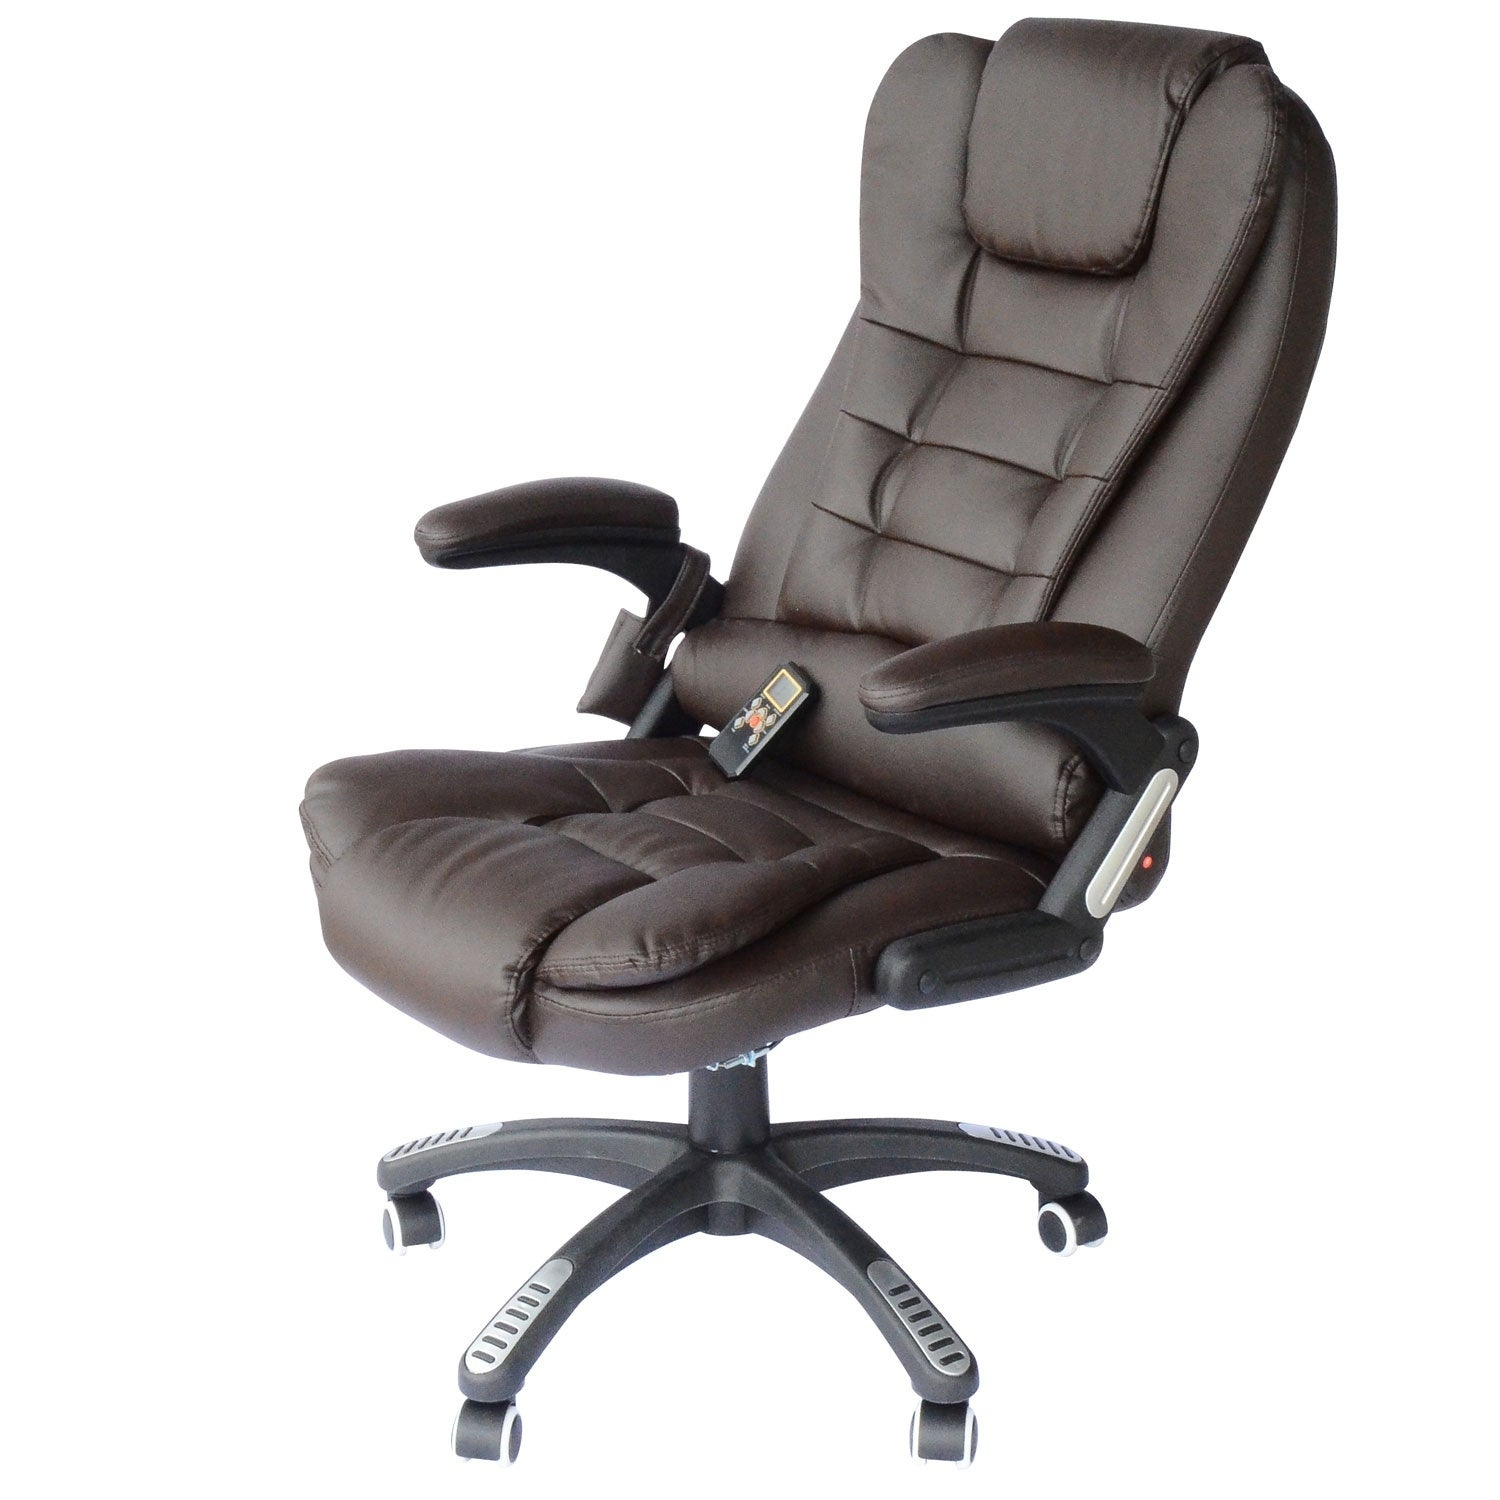 shop homcom executive ergonomic heated vibrating massage office